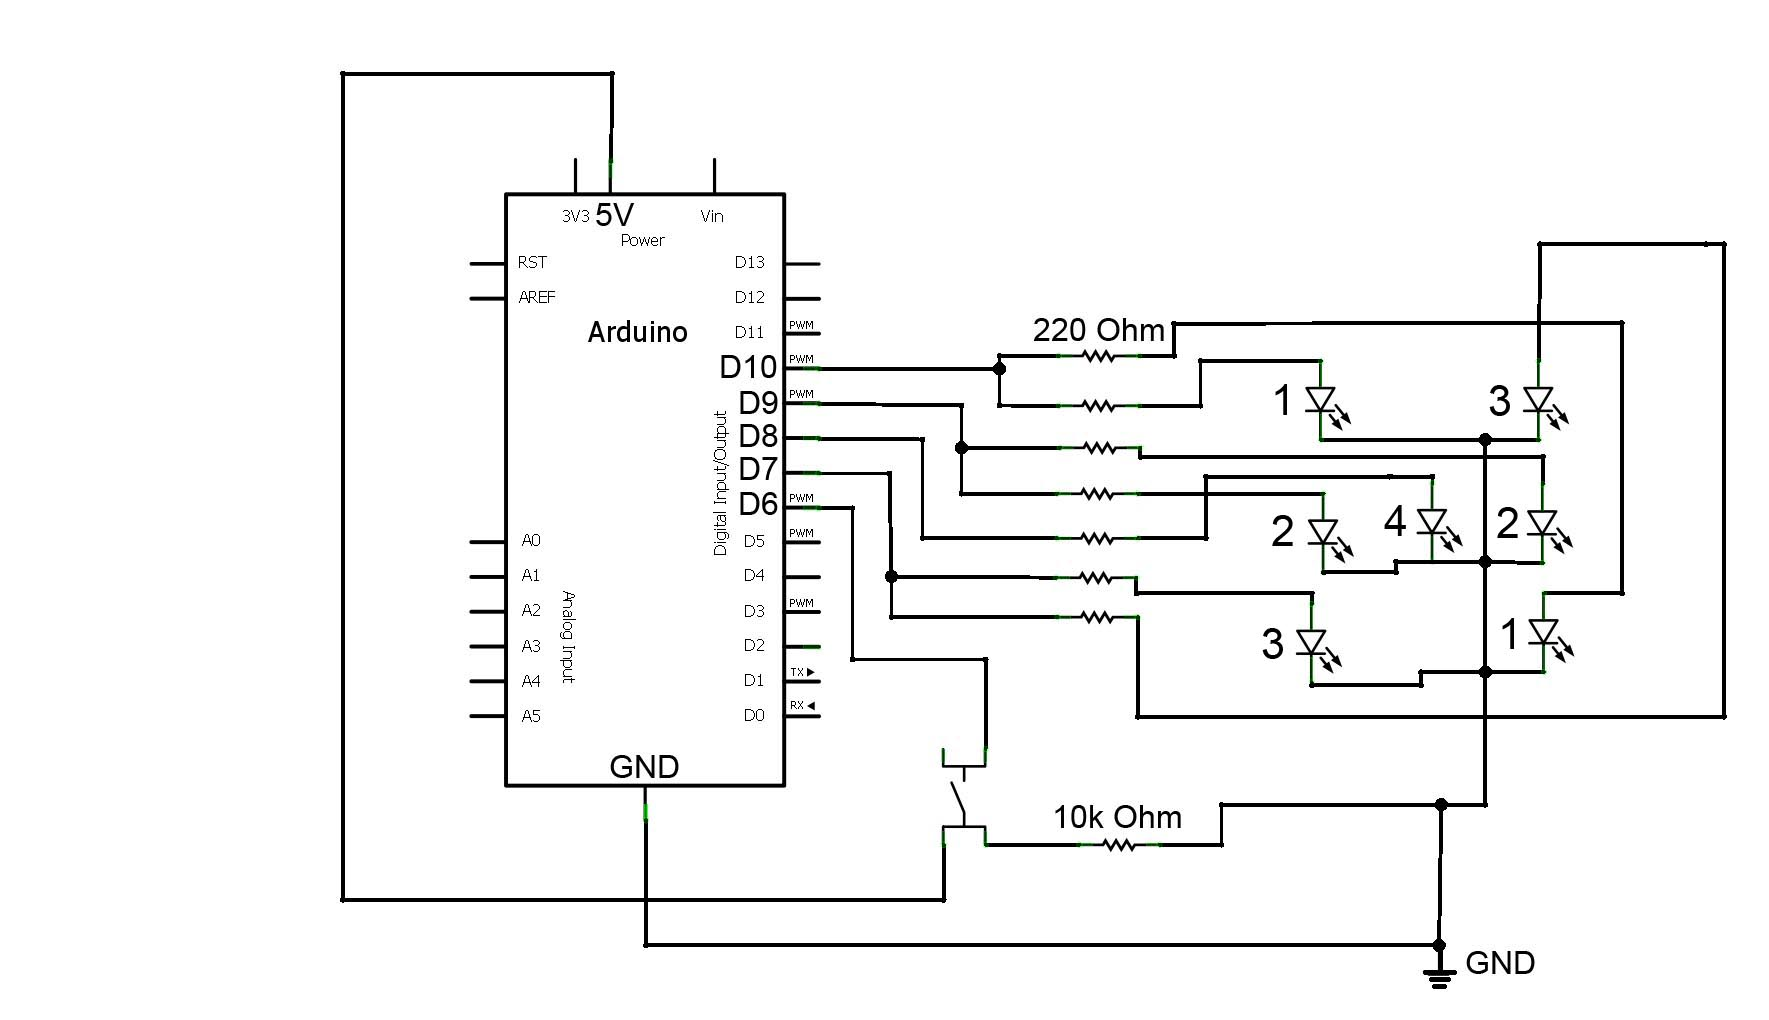 Electronic Dice Circuit Wiring Diagrams Library Ac Fan Speed Control Http Wwwseekiccom Circuitdiagram 555 Arduino Led 9 Steps With Pictures